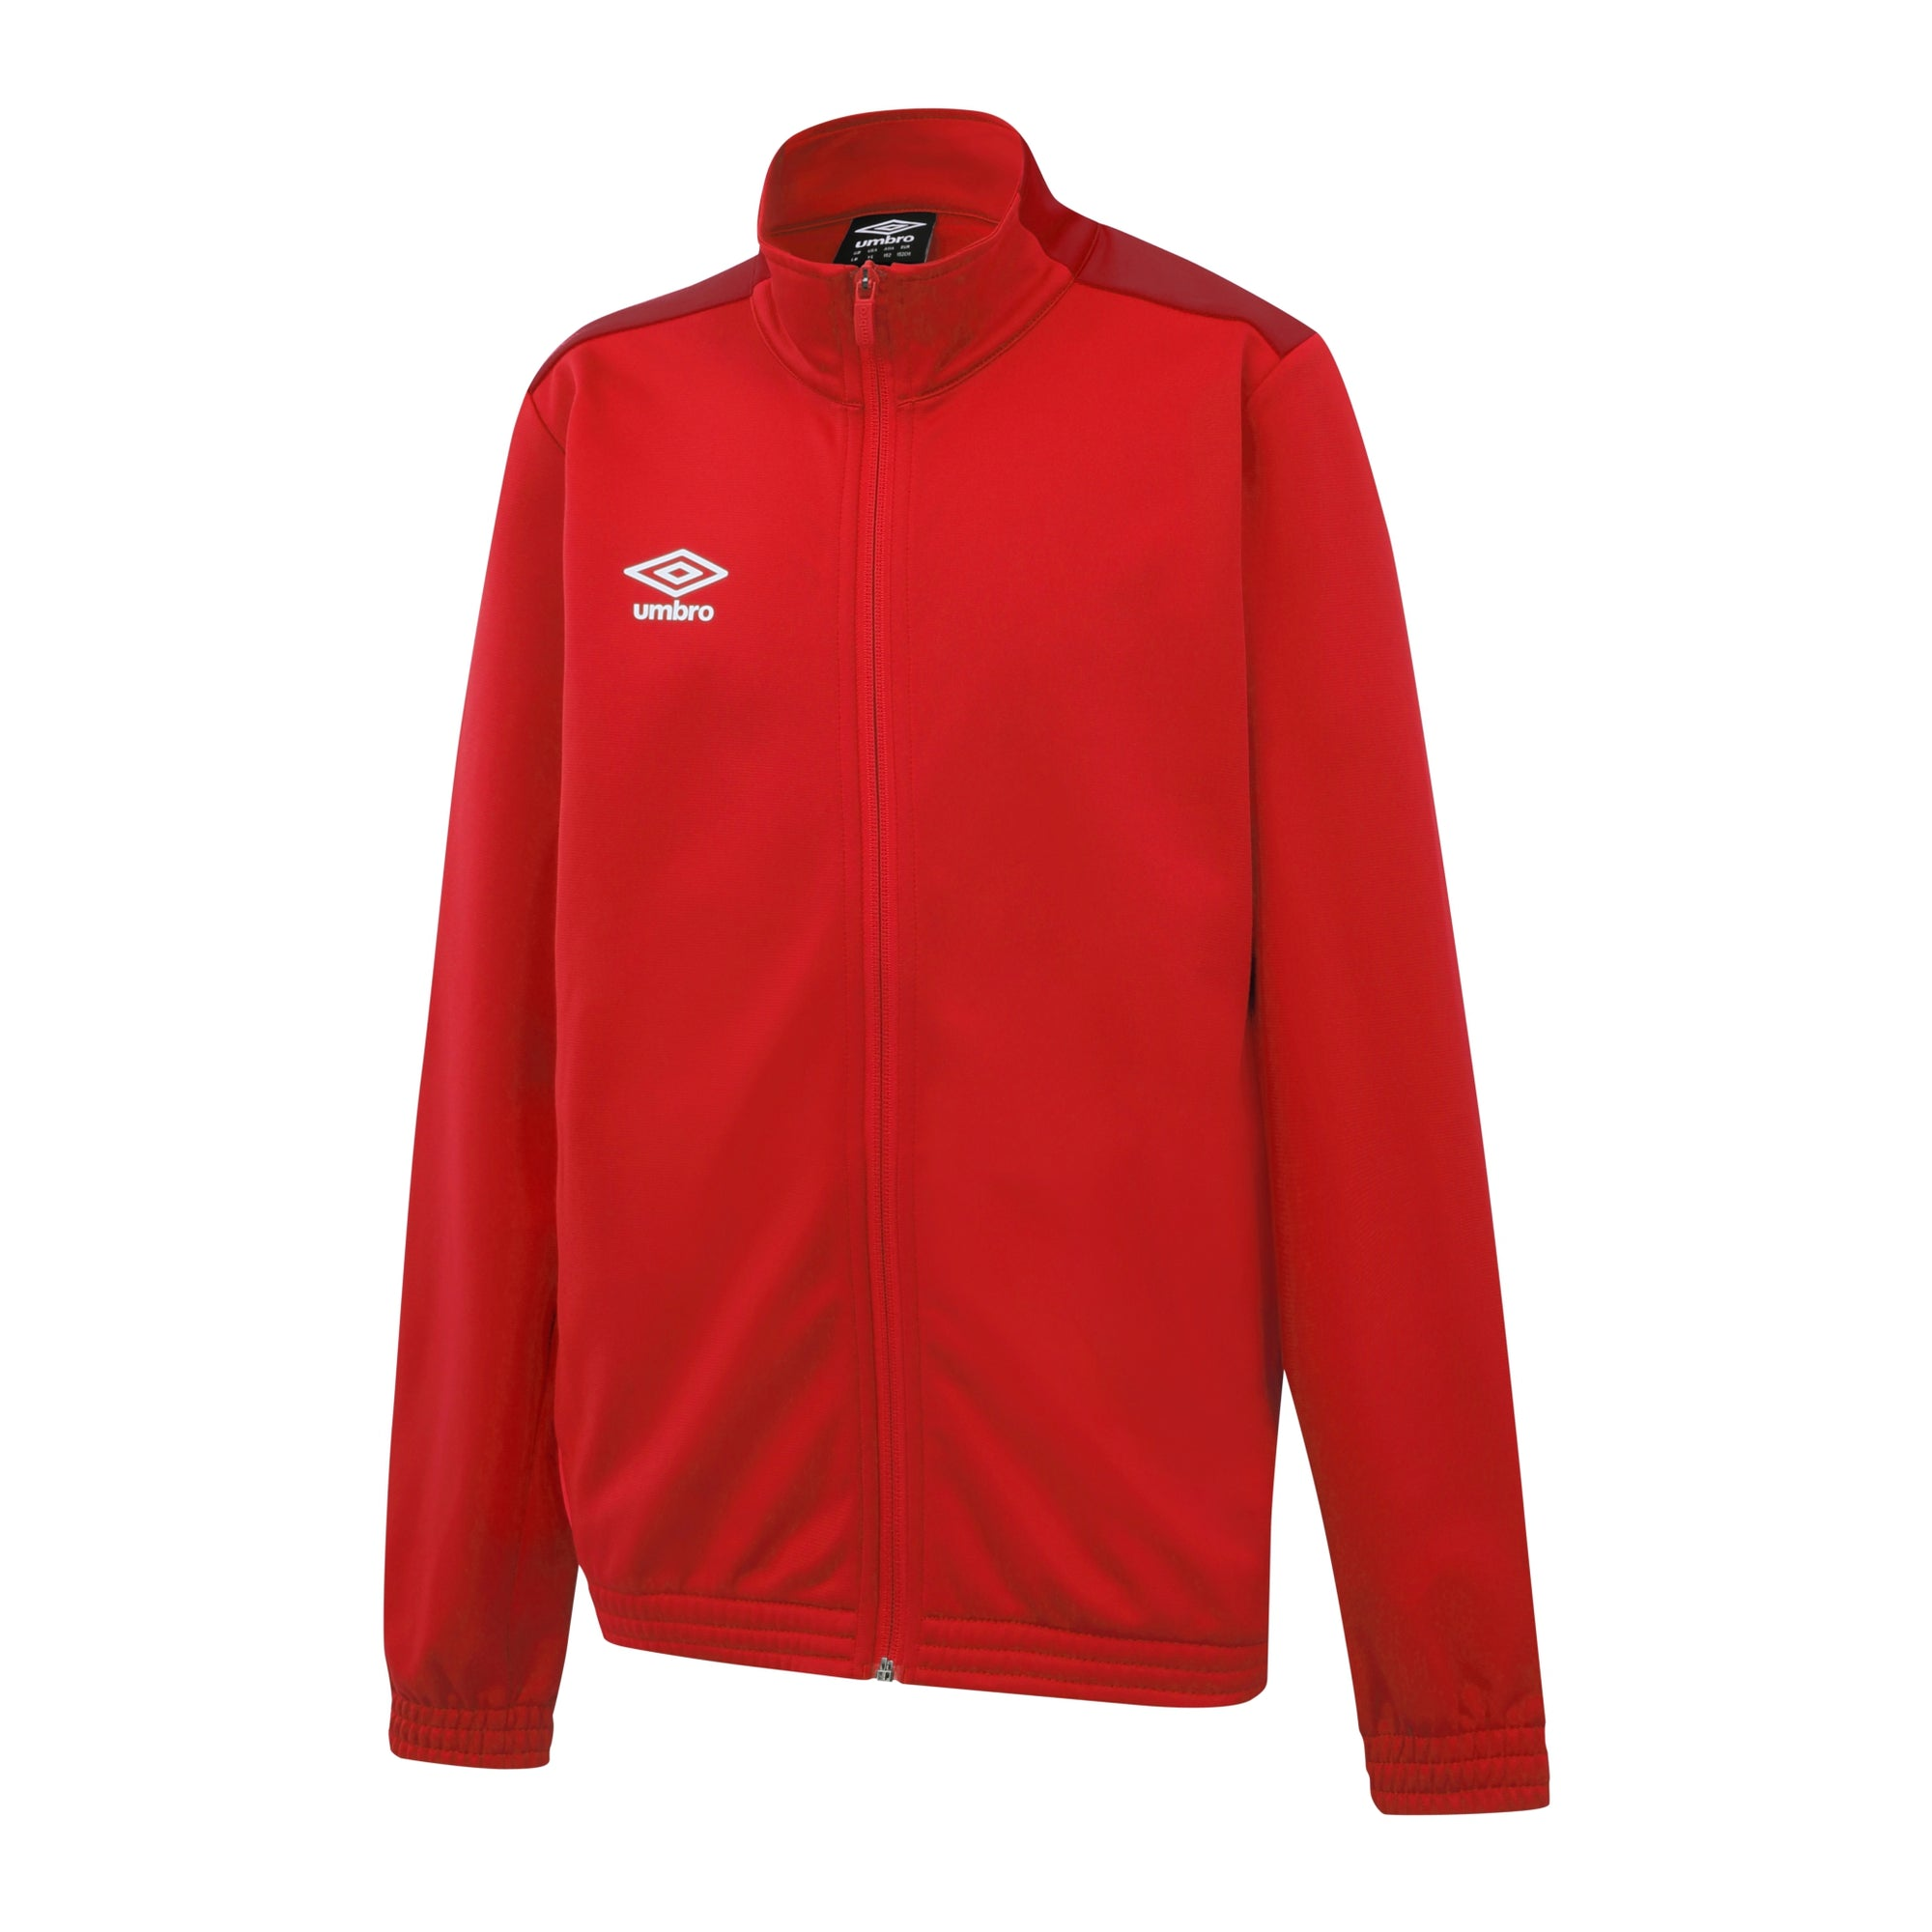 Umbro Training Knitted Jacket - Vermillion/Jester Red